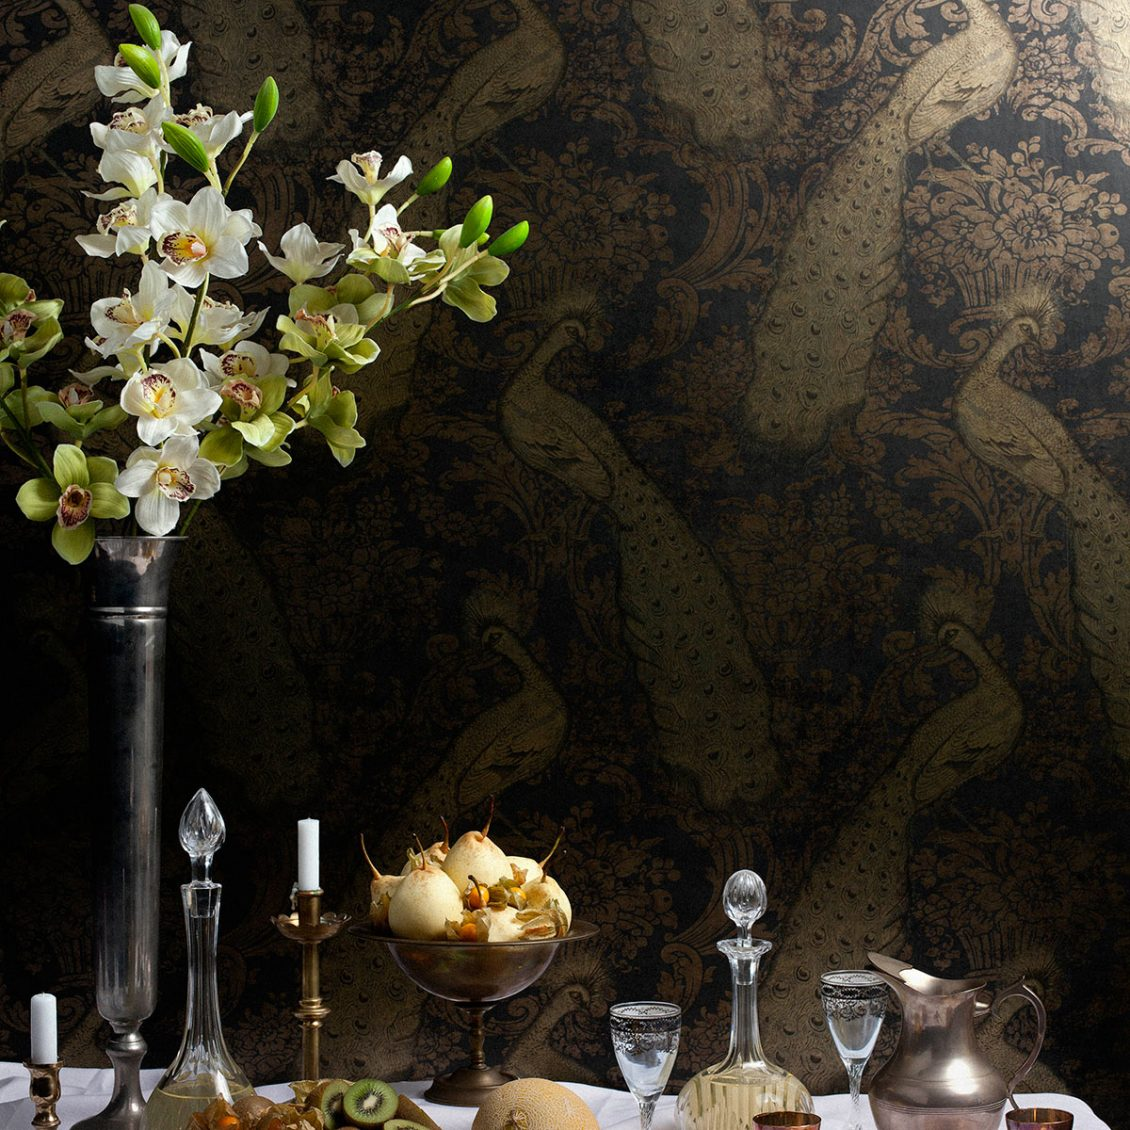 Key Interior Decor Trends For Winter 2018/2019 - Image Via Cole & Son - Byron Wallpaper, Gold.